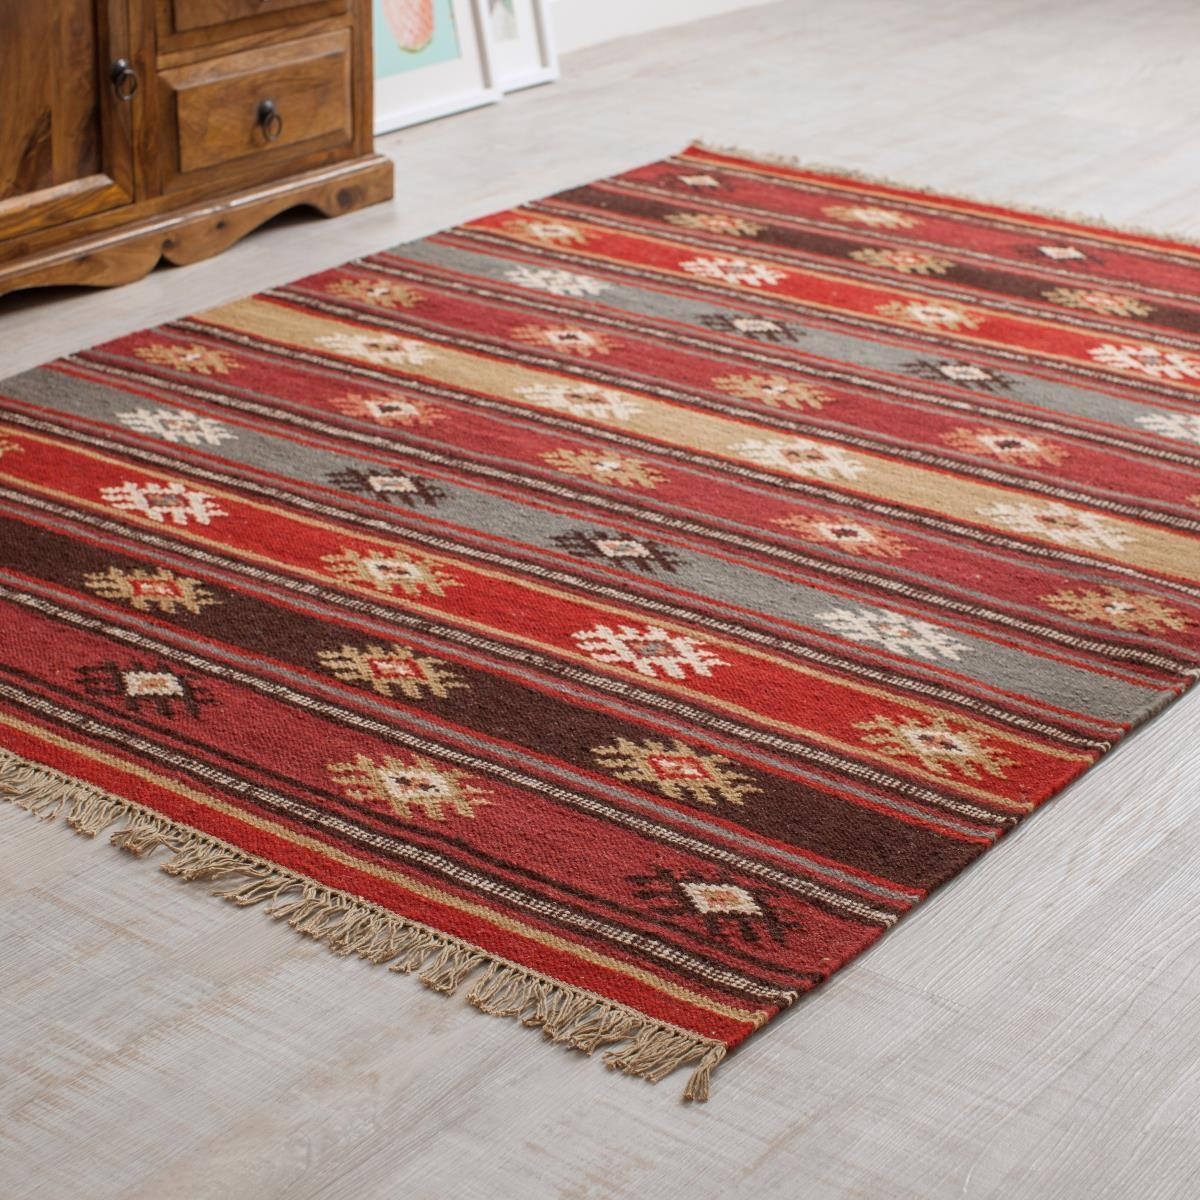 MYAKKA Red Tribal Kilim Rug Small